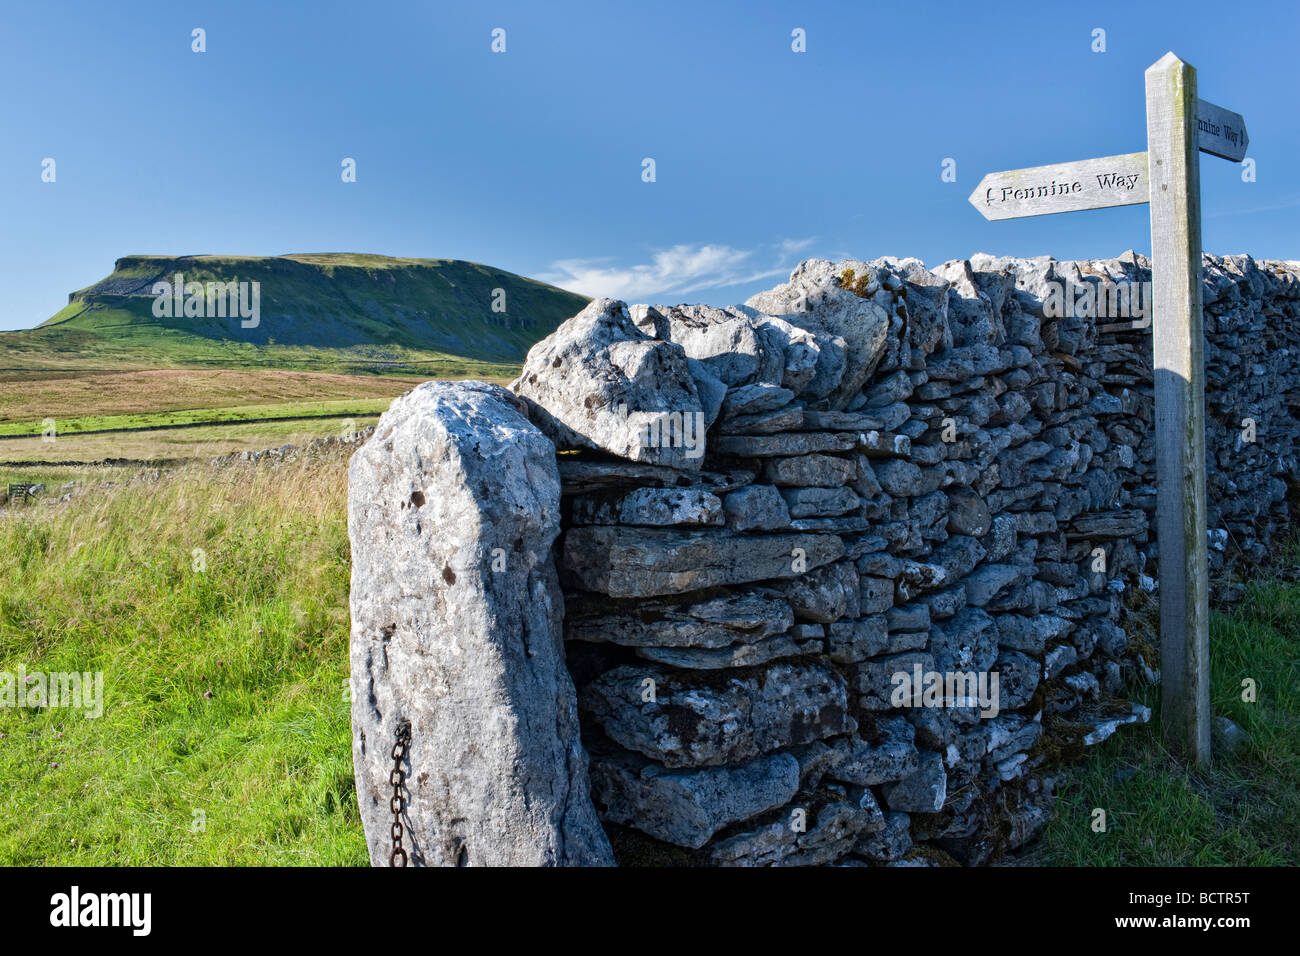 Pennine Way signpost at Silverdale, North Yorkshire. Looking North West towards Pen-y-ghent - Stock Image